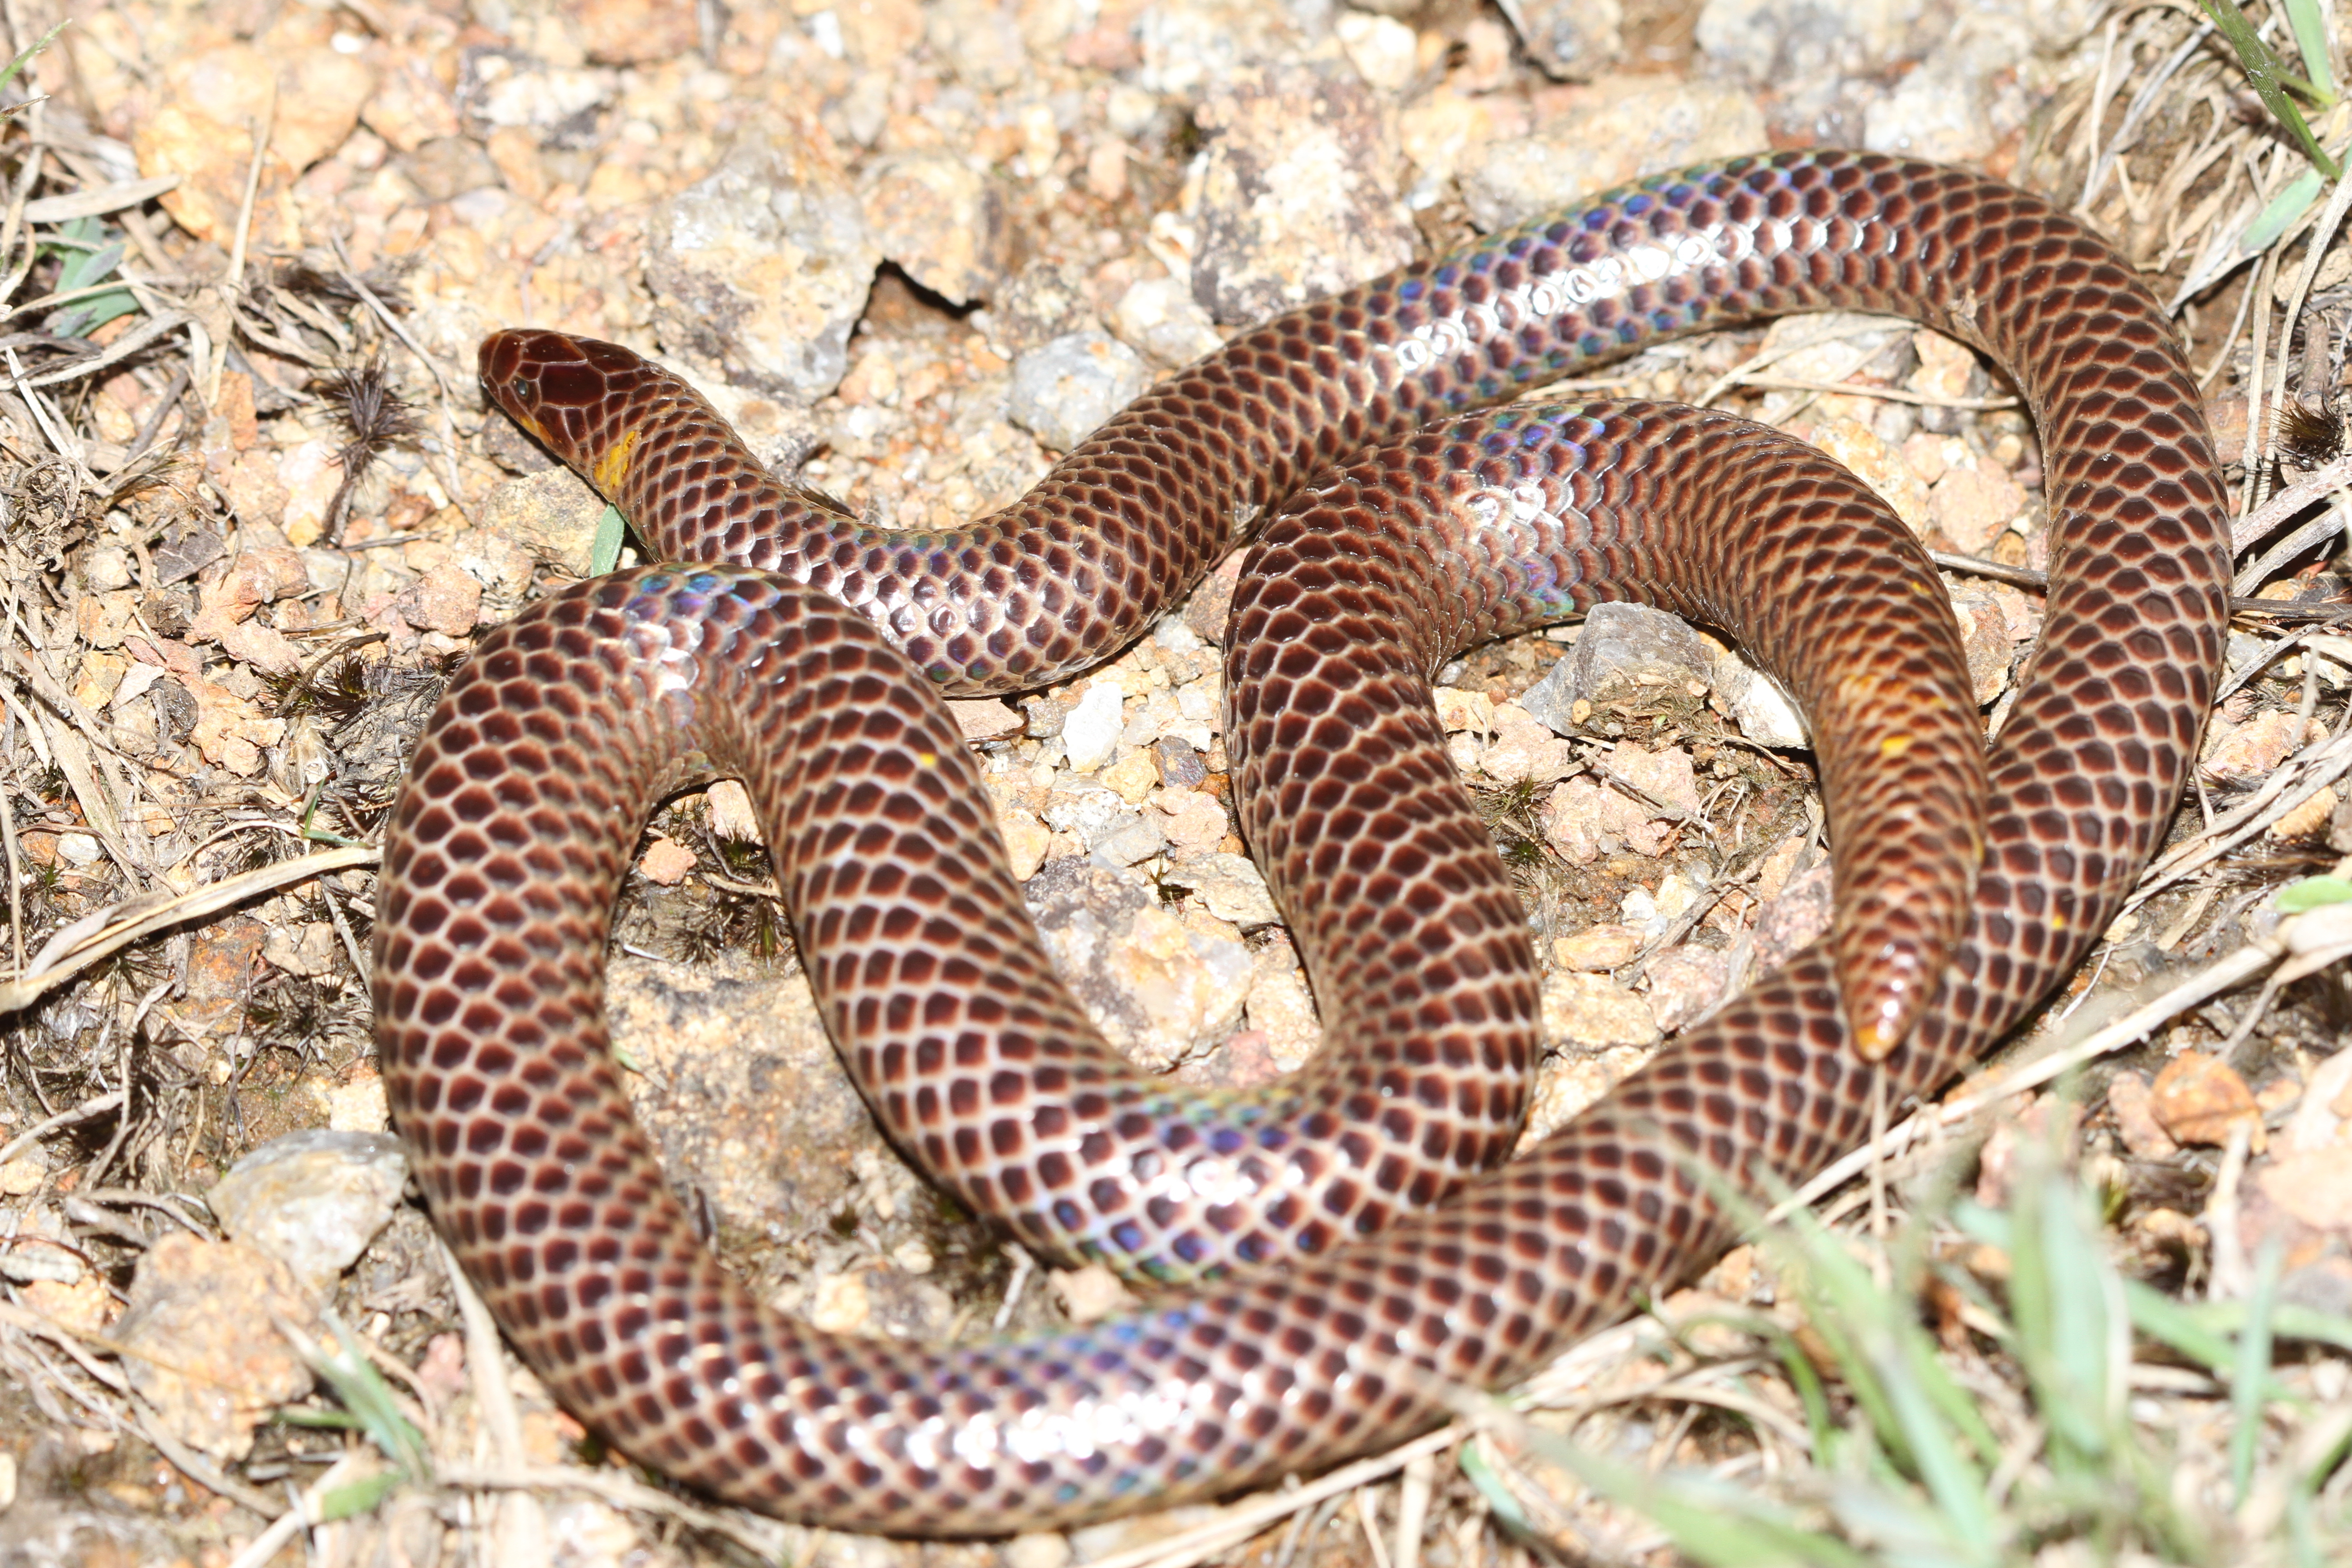 Image of Günther's Burrowing Snake